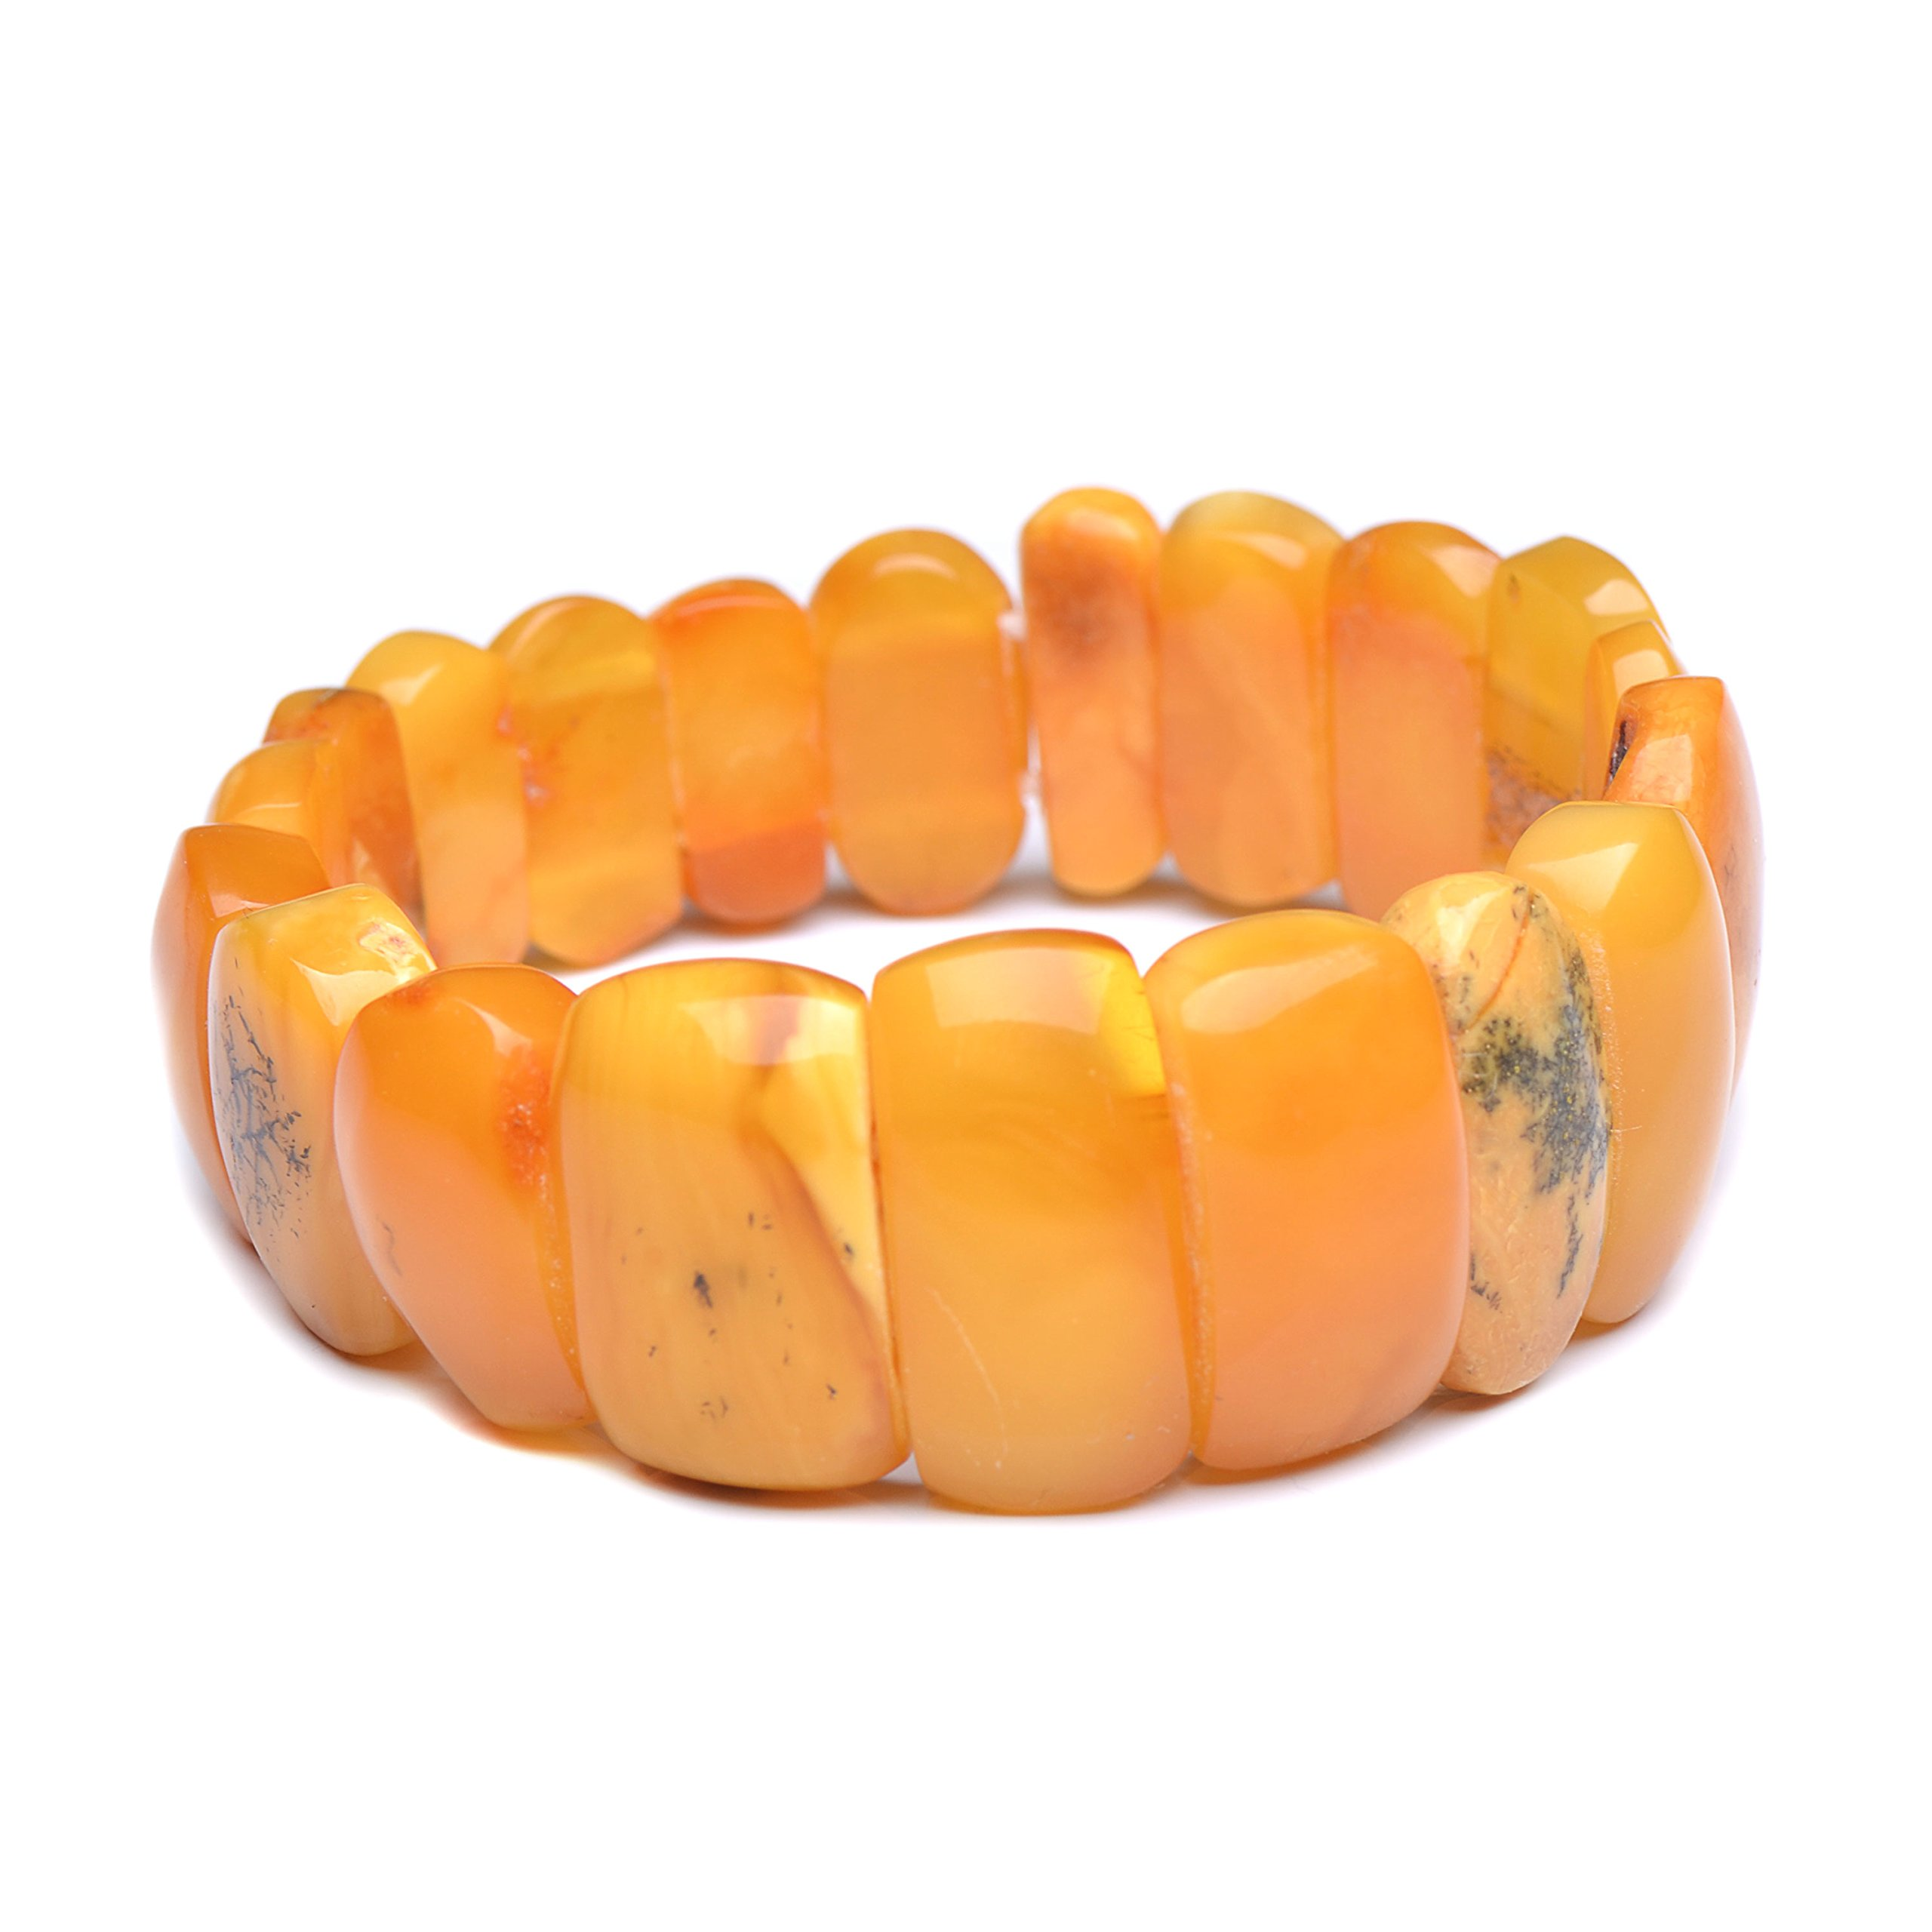 Vintage Amber Bracelet - Unique Amber Bracelet - Certified Handmade Amber Bracelet - Genuine Amber Bracelet (7.5 inches, Green) (6.7 inches, Butterscotch) by Genuine Amber